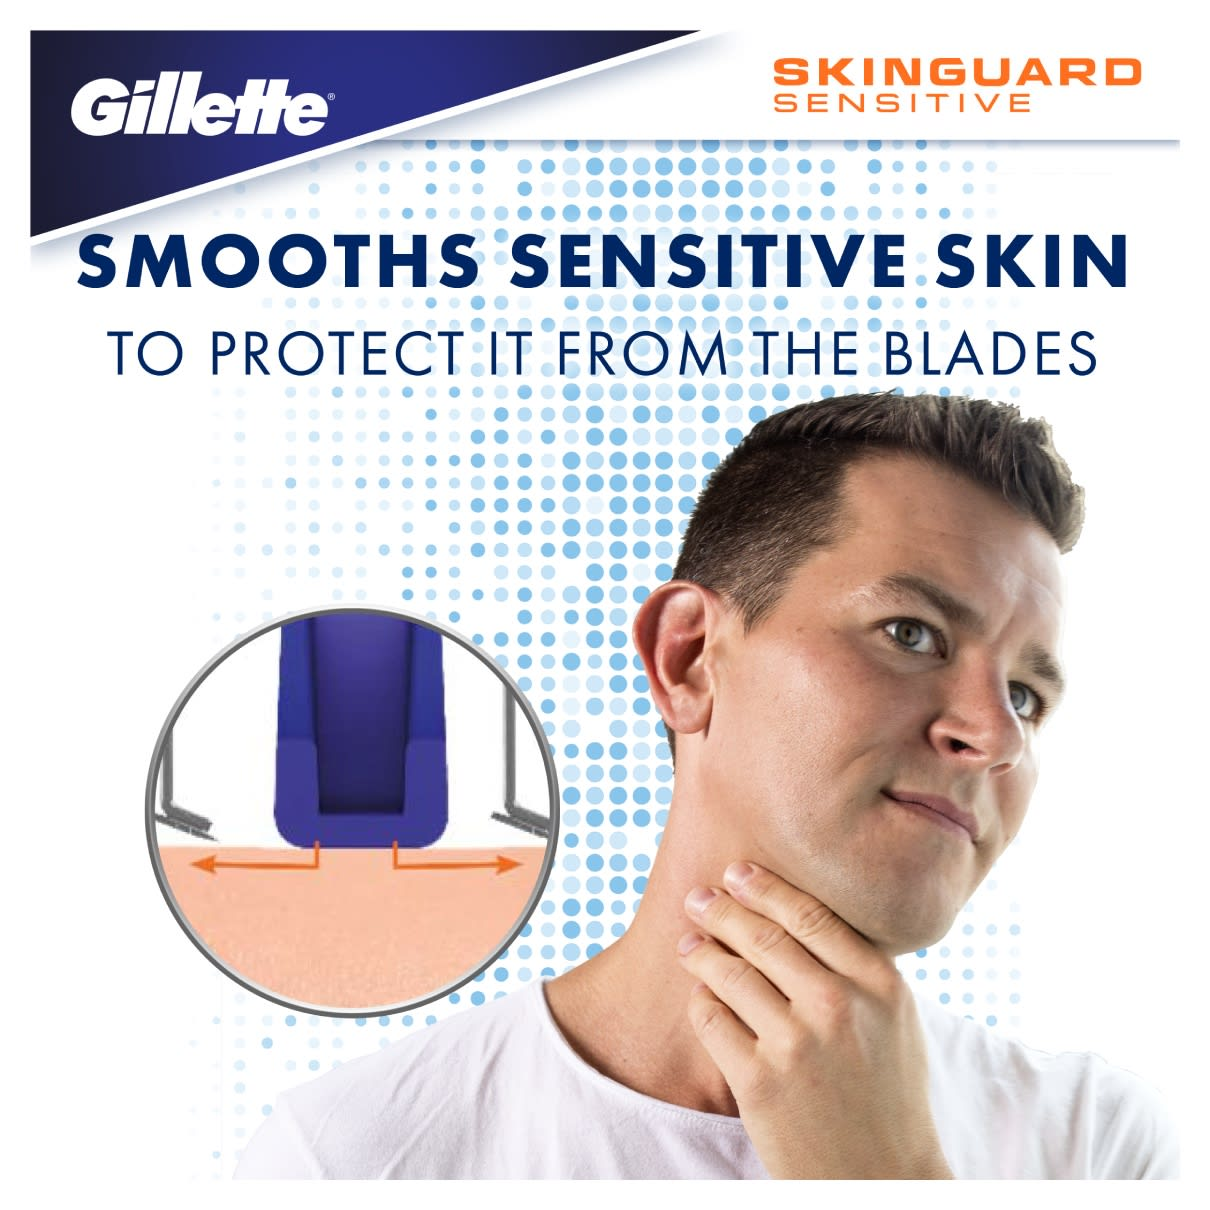 SMOOTHS SENSITIVE SKIN TO PROTECT IT FROM THE BLADES